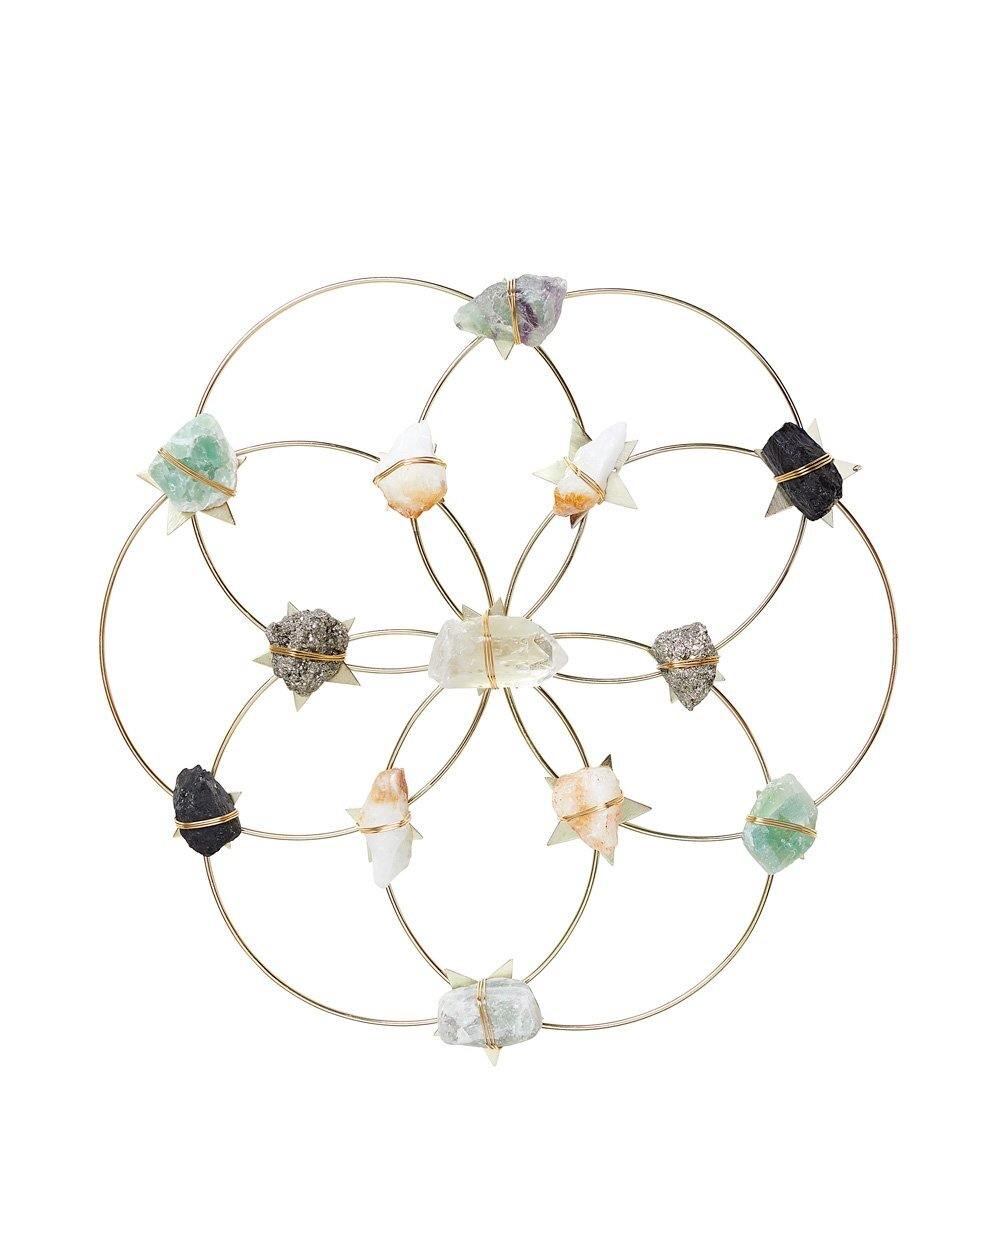 Crystal Grid - Healing Crystal Wall Decor - Flower Of Life - Large クリスタルグリッド フラワーオブライフ